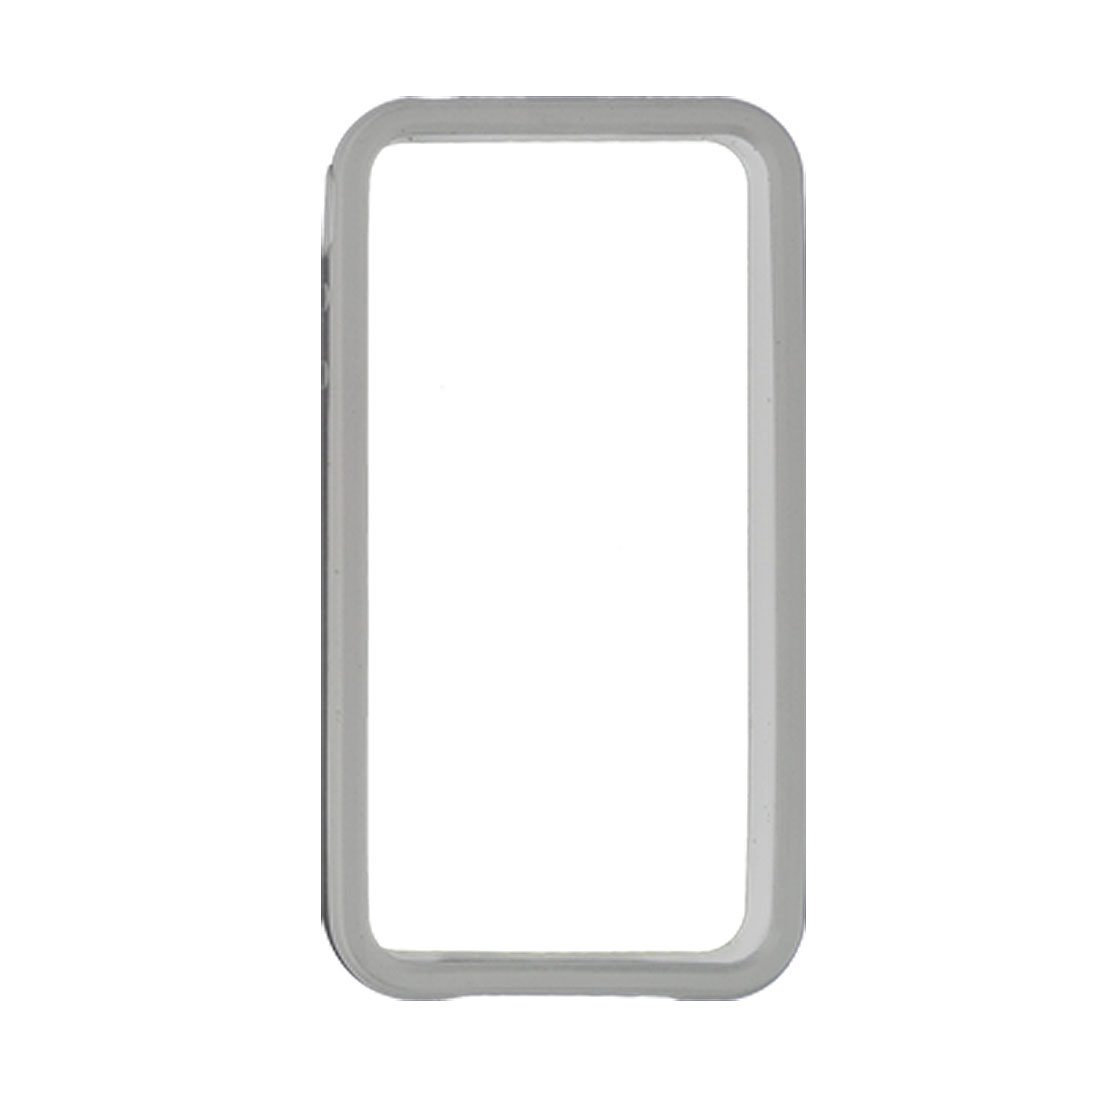 Soft Plastic White Bumper Side Frame Cover Protector for iPhone 4